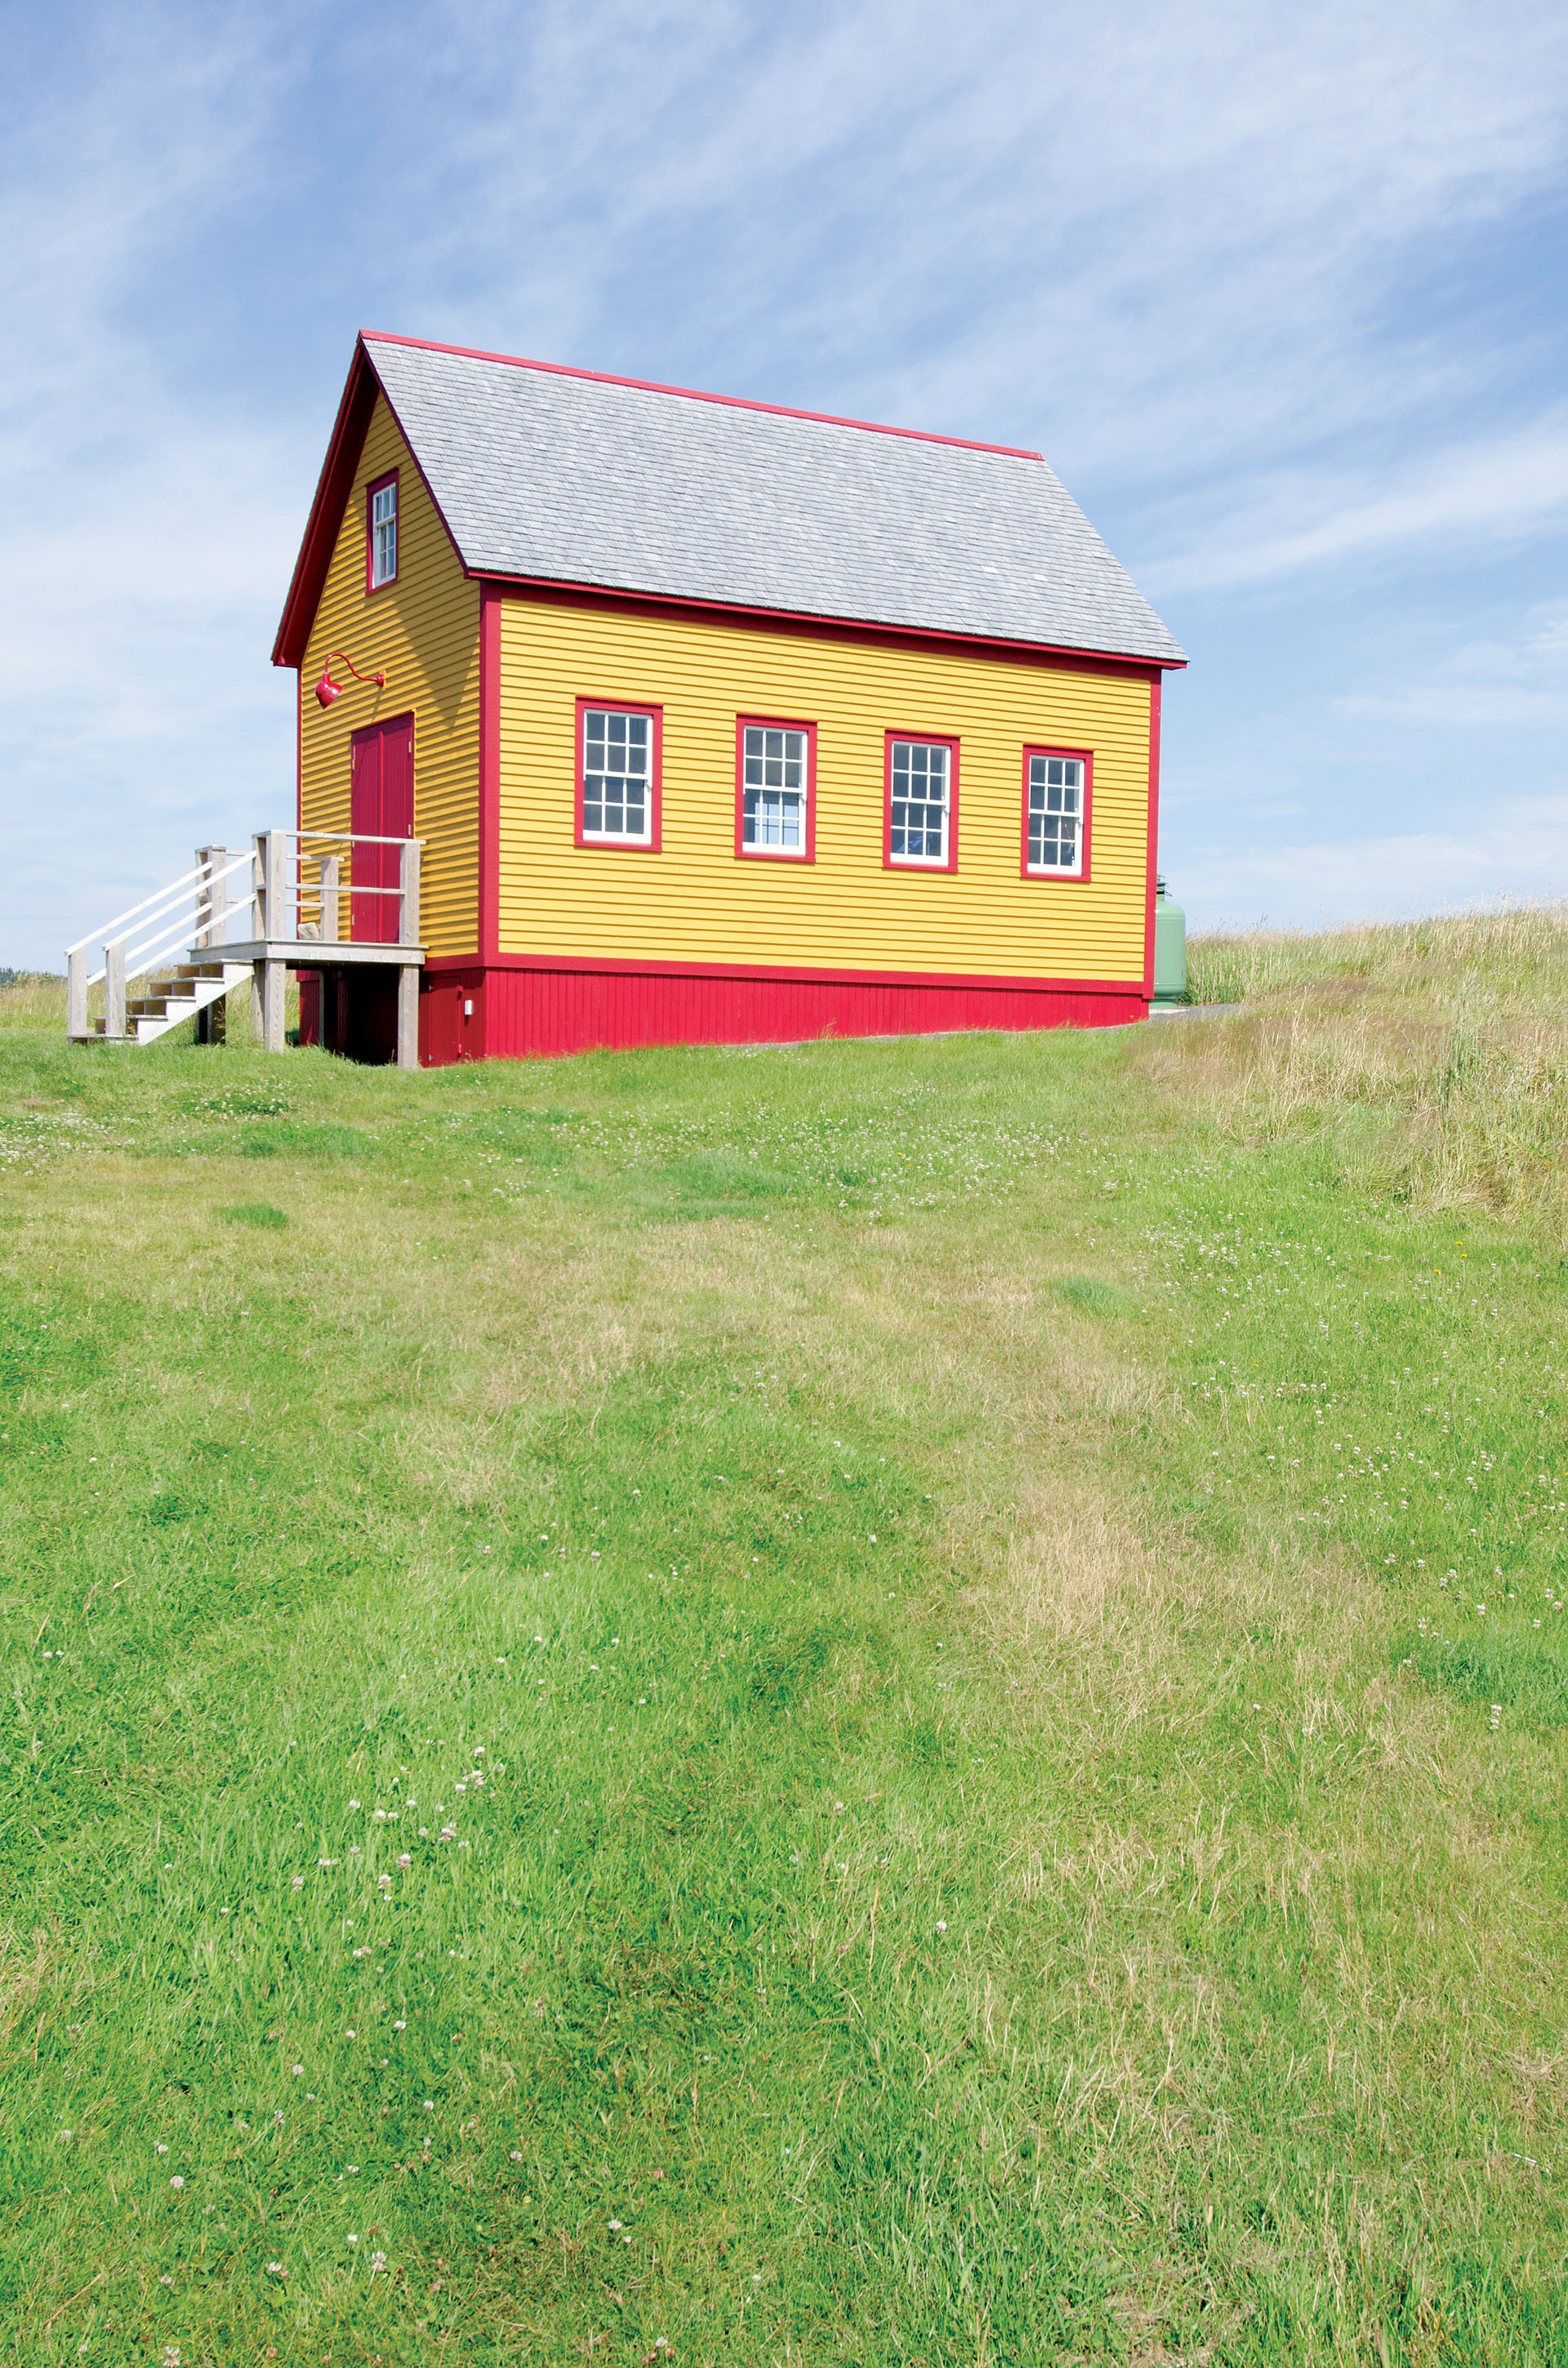 Cabin tour an updated traditional newfoundland house in for Cabins in newfoundland